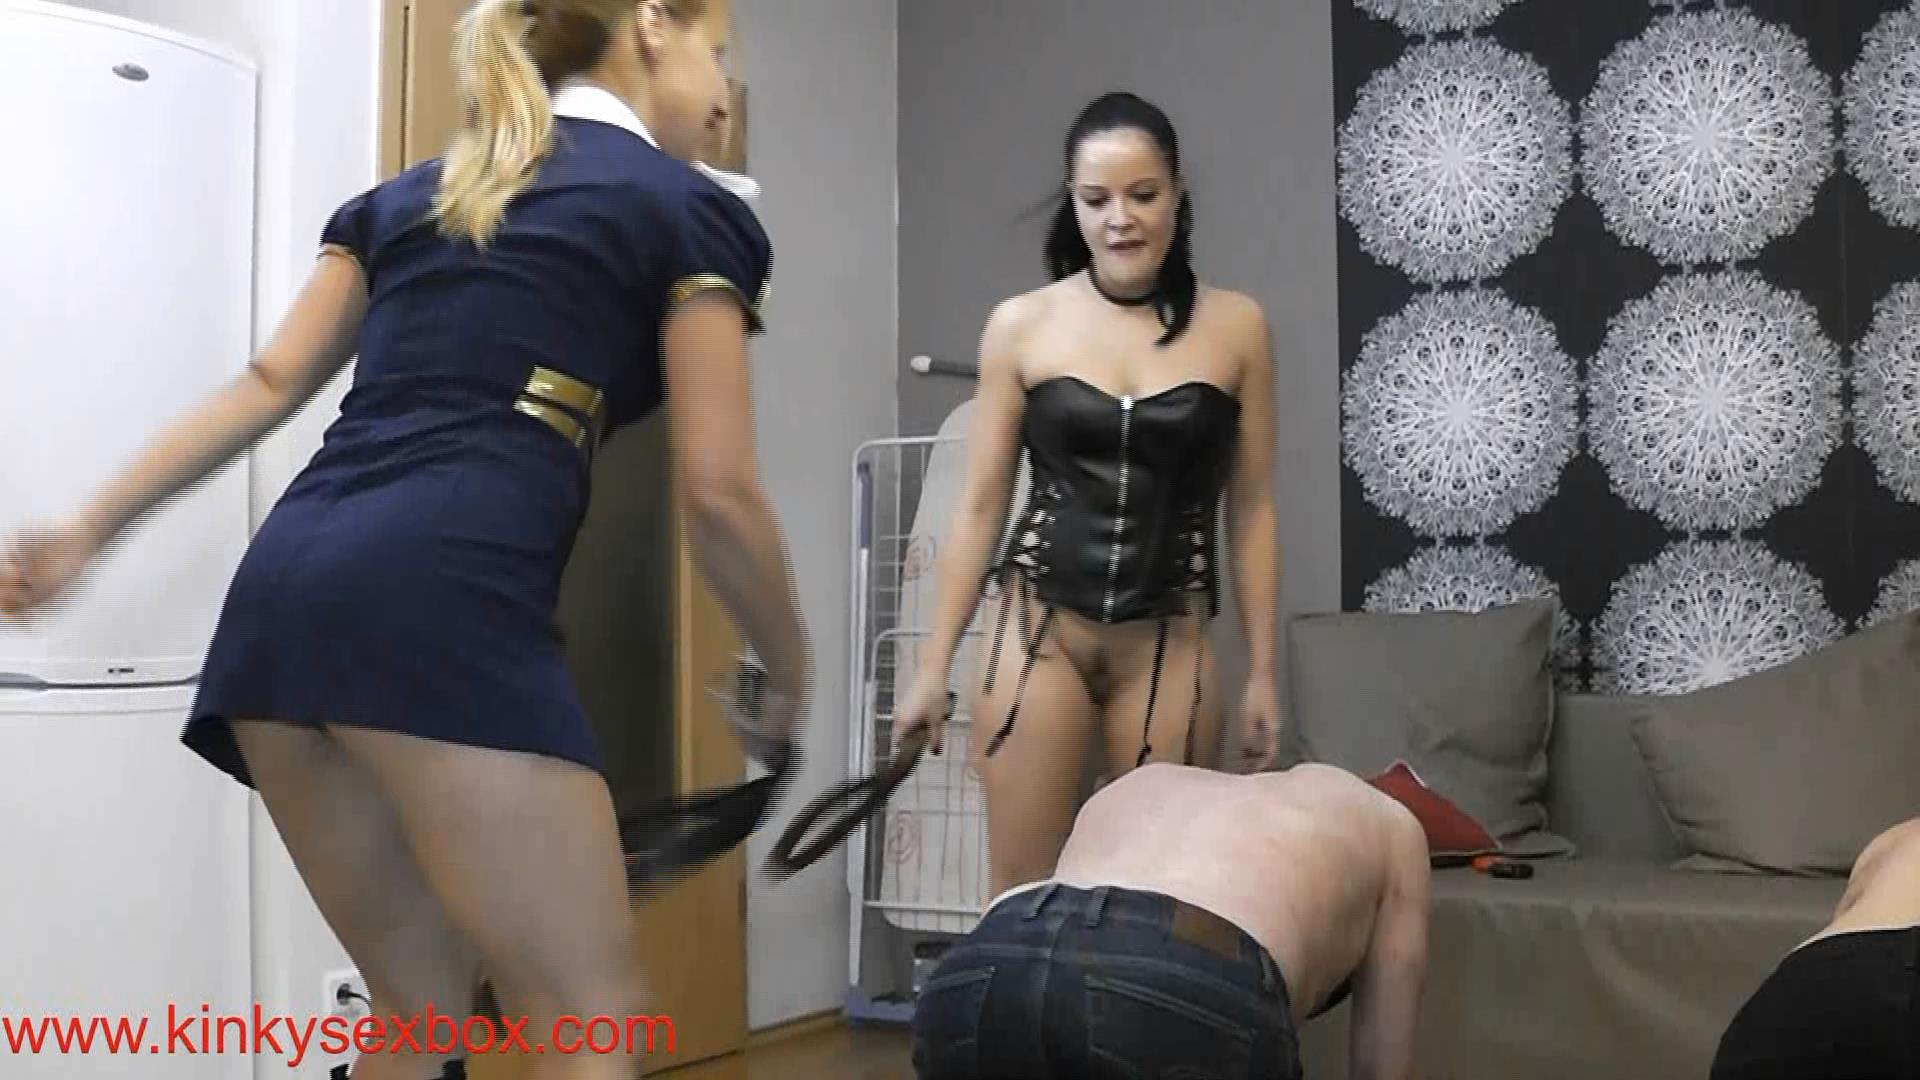 Dolly Dior, Princess Nikki In Scene: Dolly and Nikki 04 - KINKYSEXBOX - FULL HD/1080p/WMV